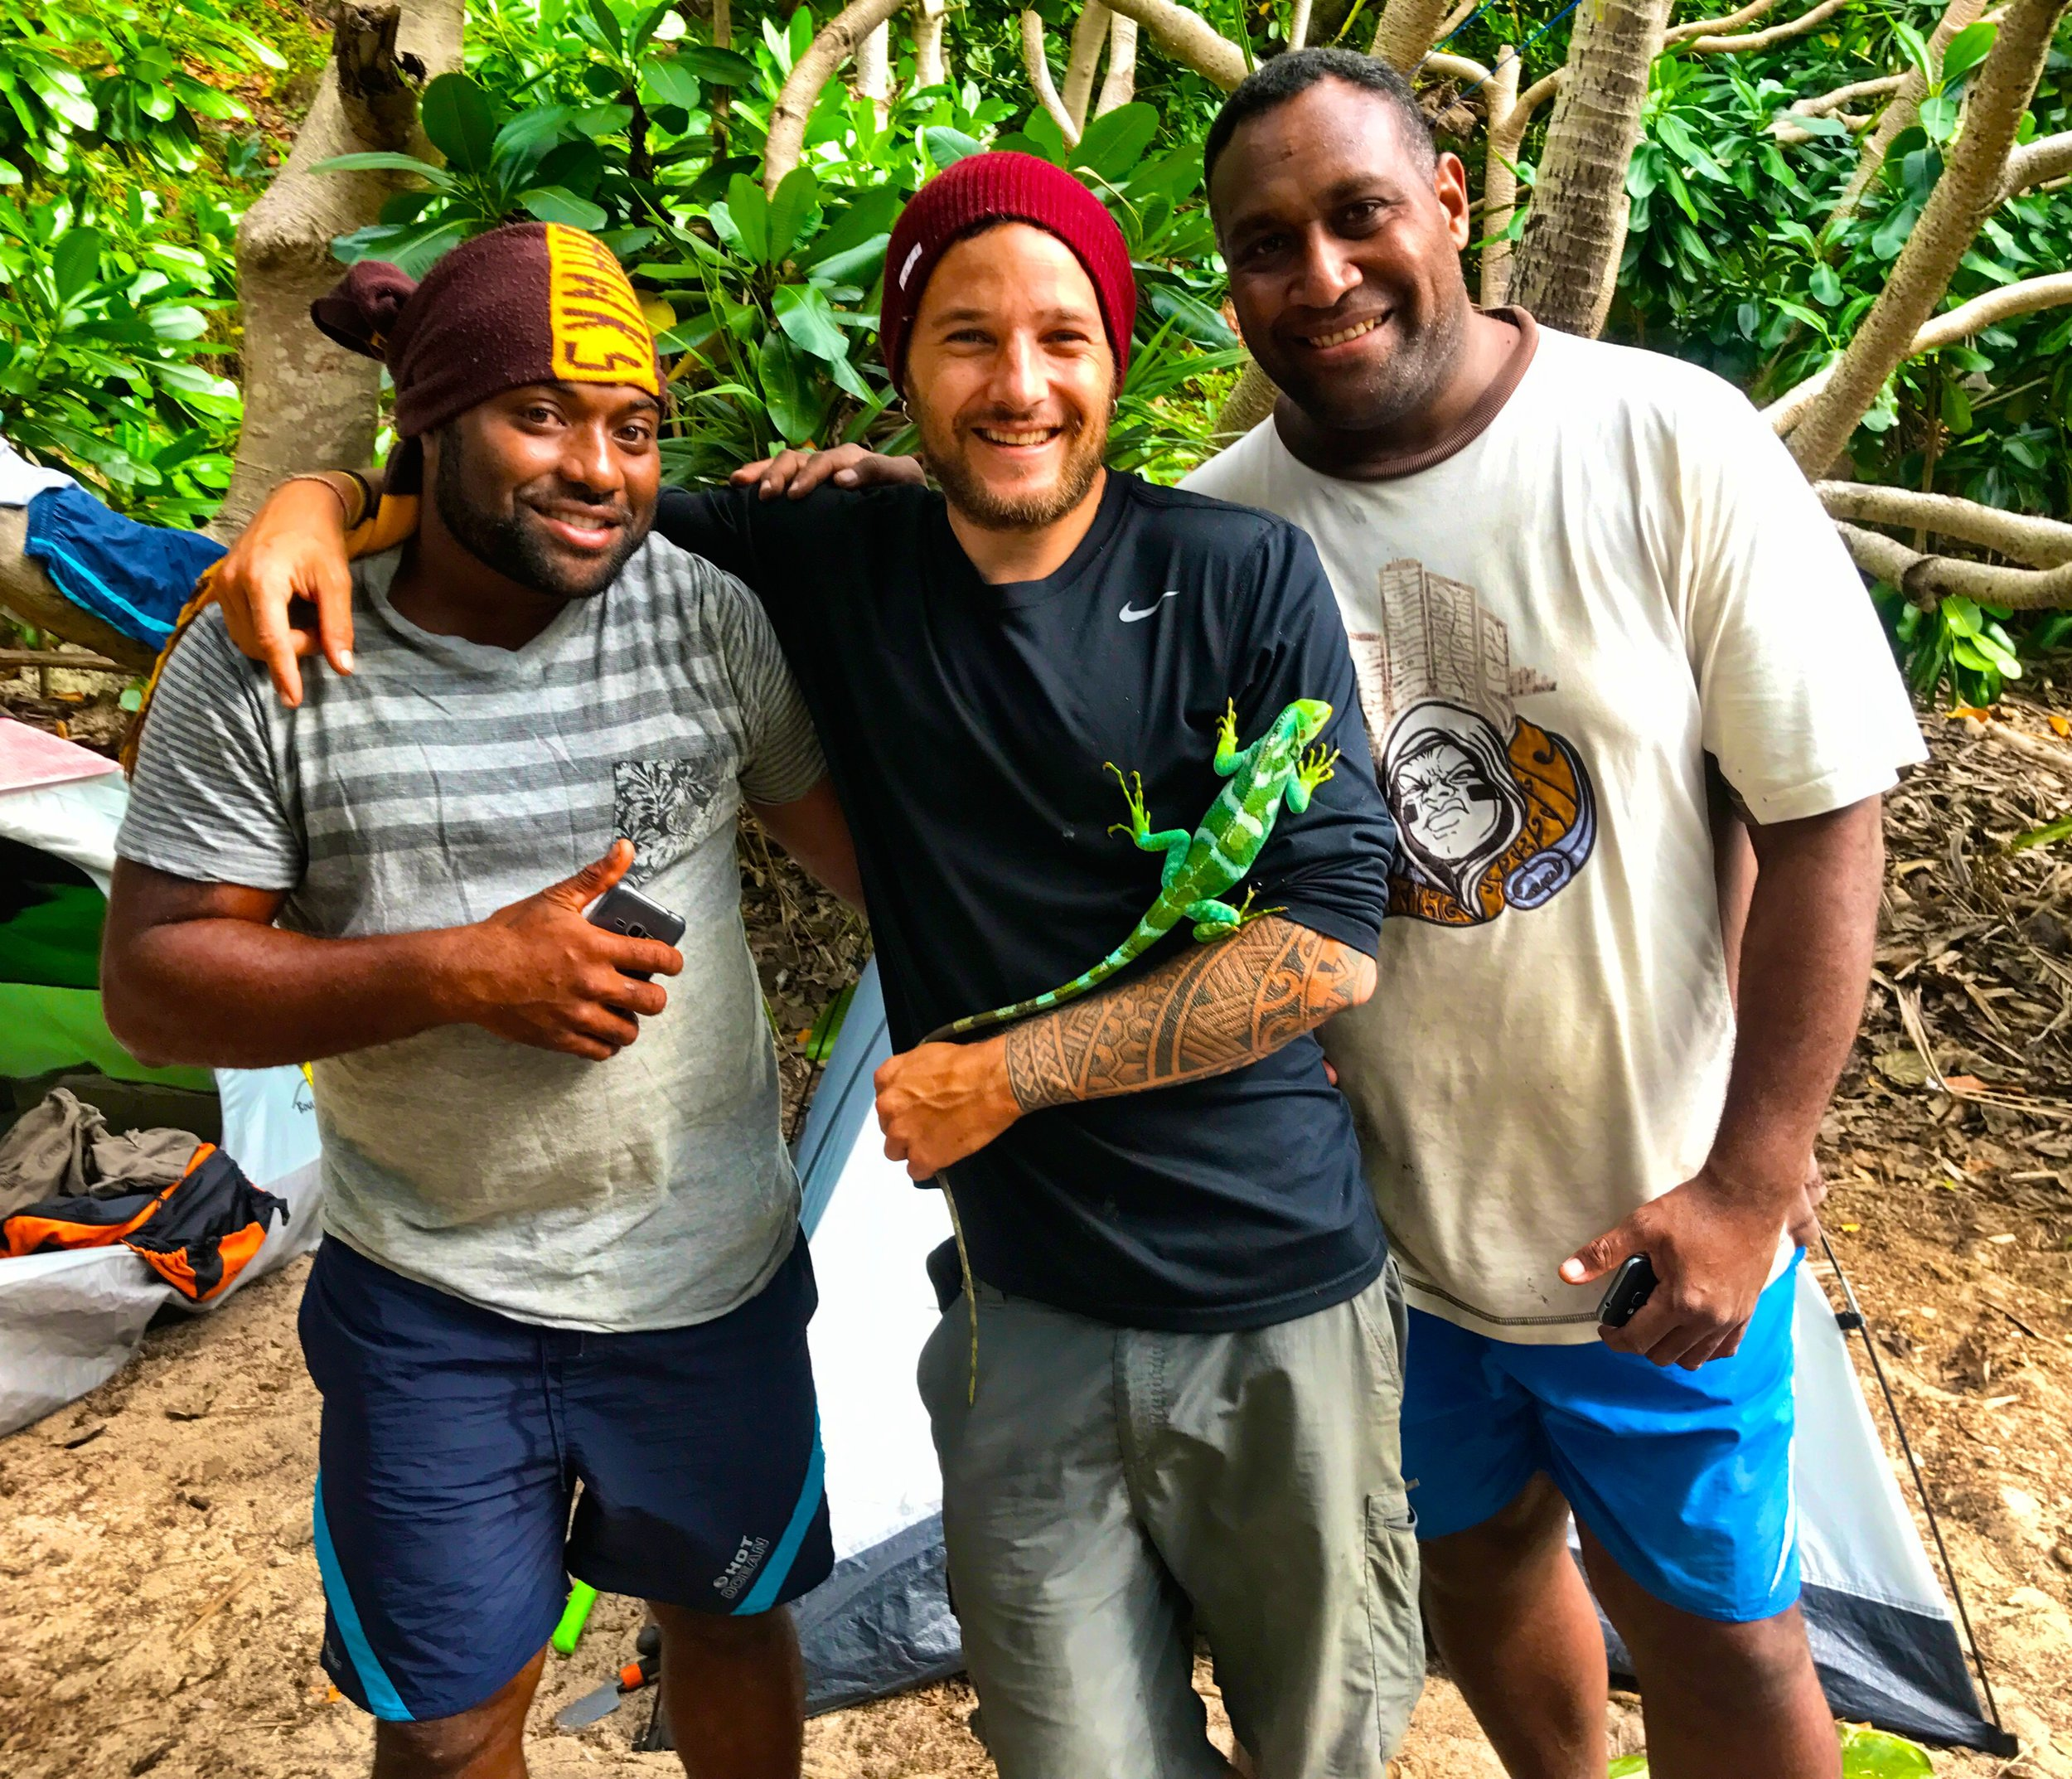 My Fijian brothers and the conservation allstars of Fiji, Mata and Jone. Jone works with the National Trust of Fiji and Mata is the head Iguana Ranger on the island of Yadua Taba. (Fiji 2017).